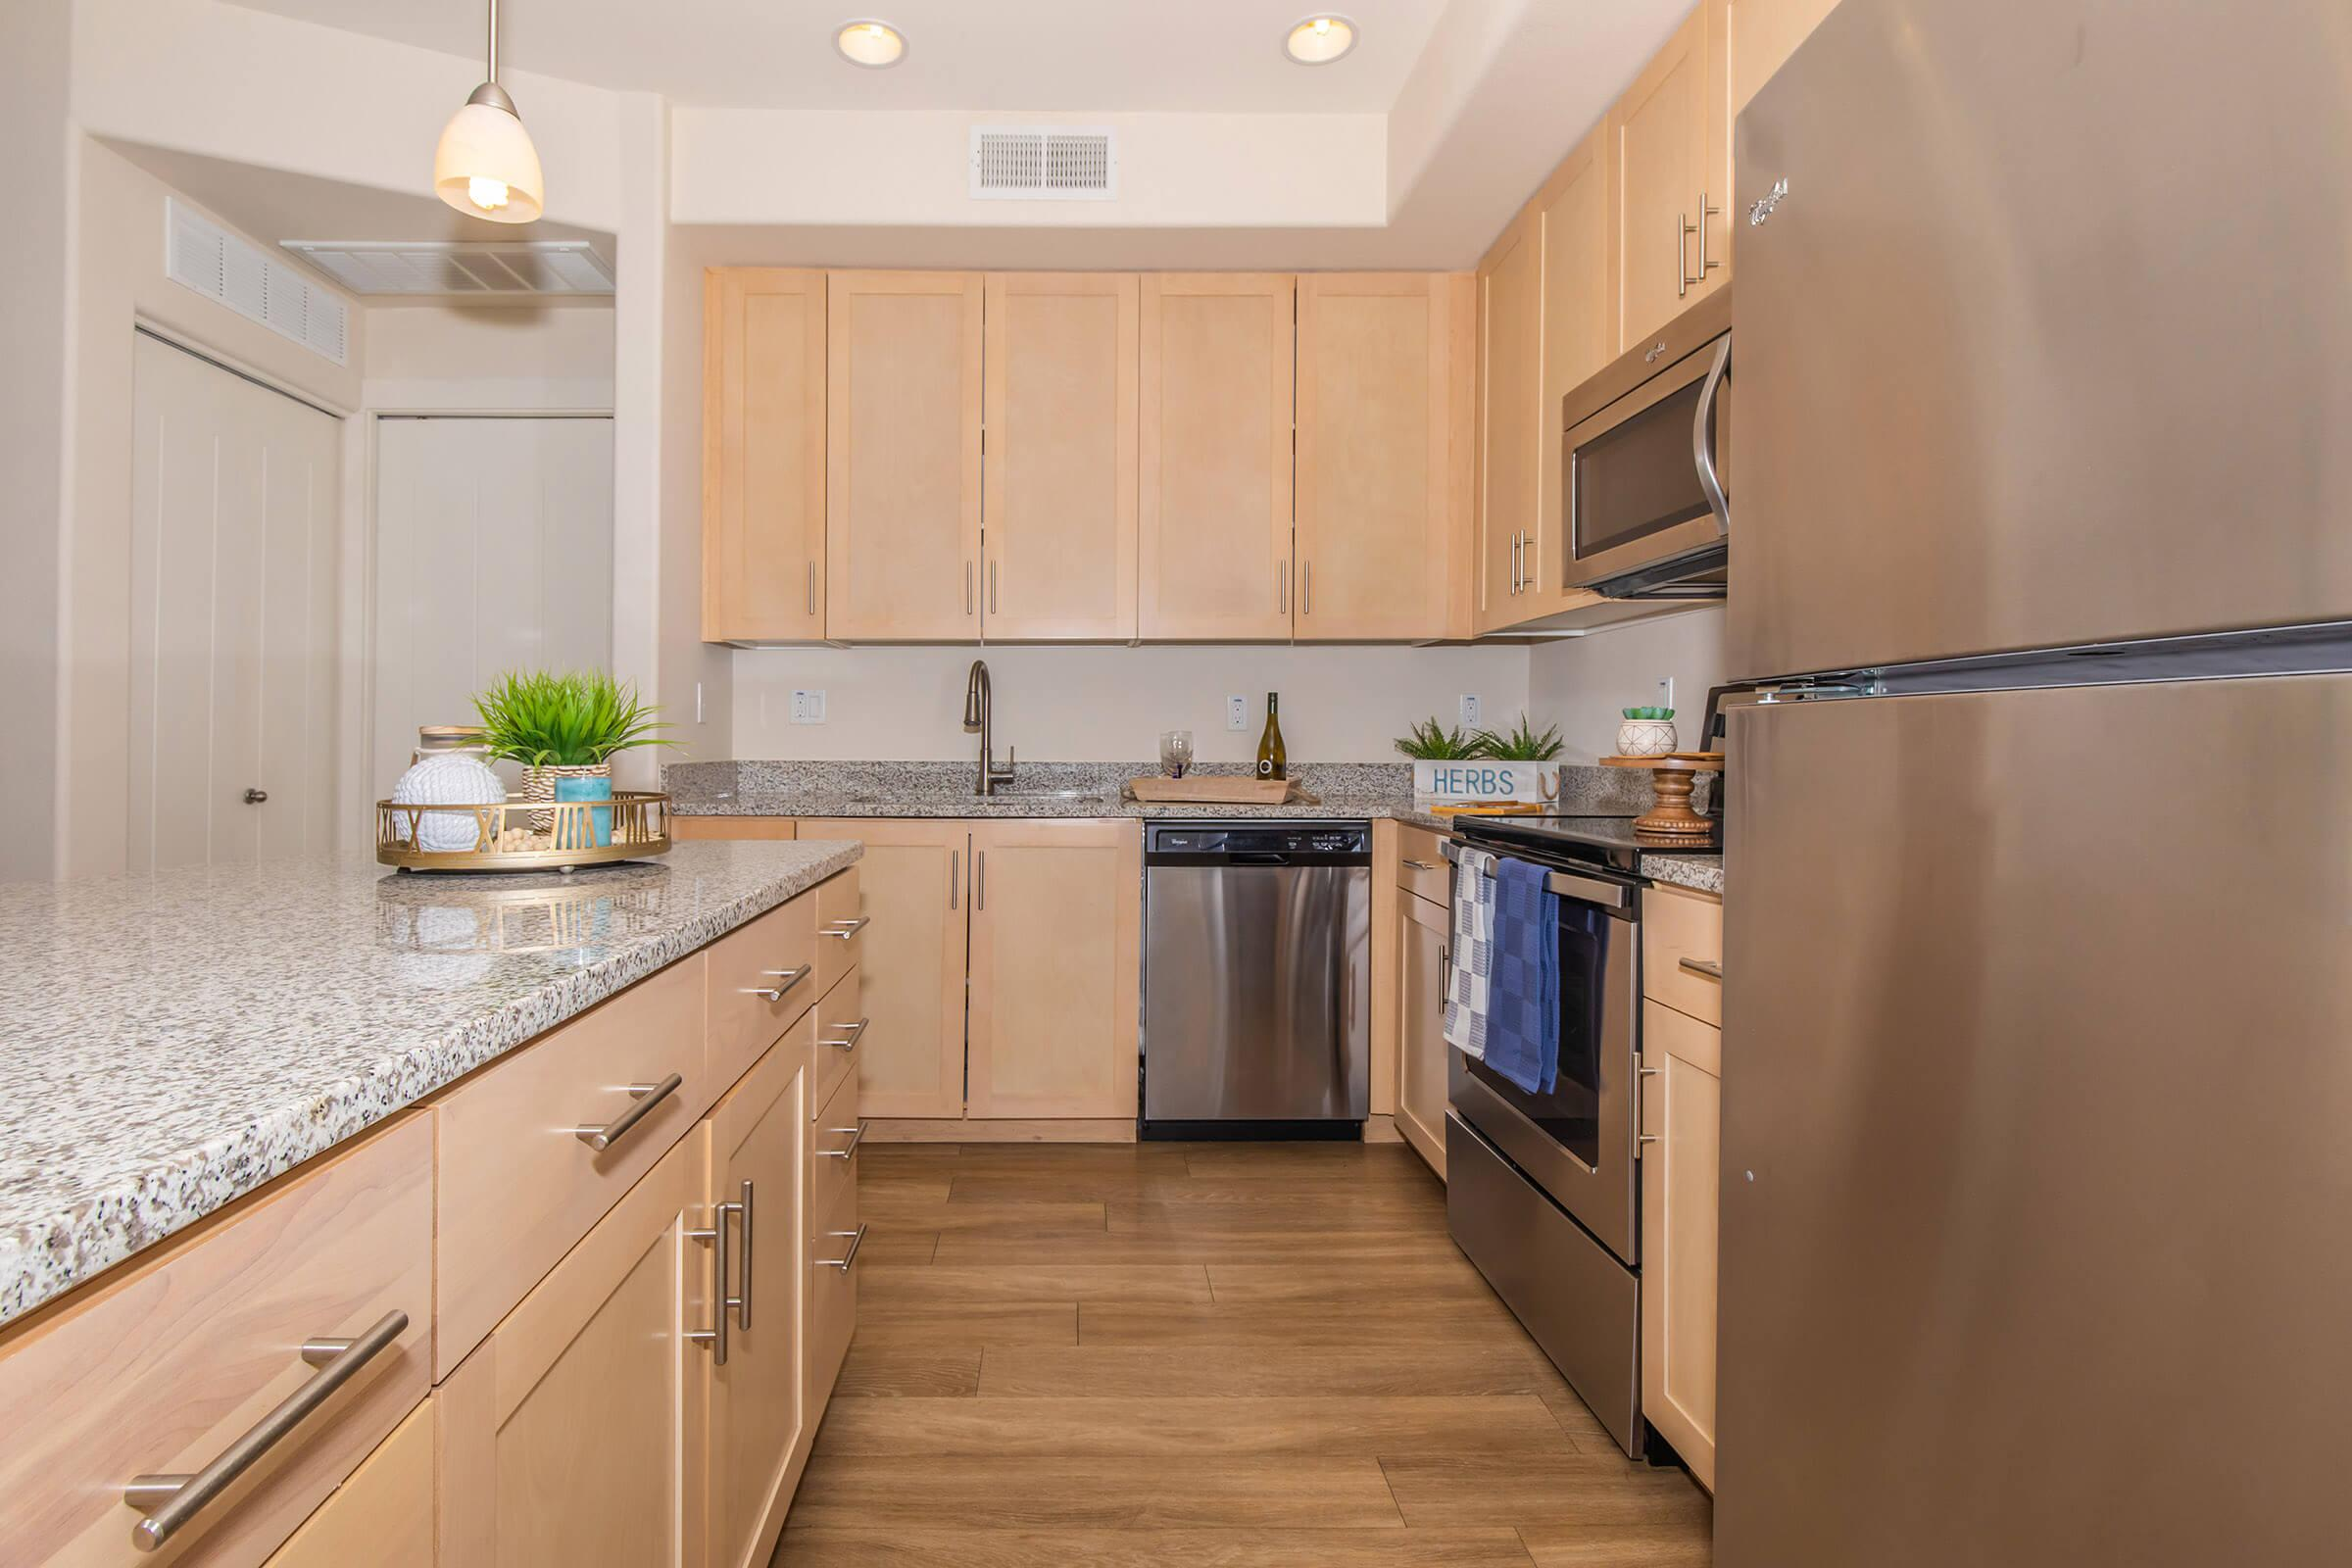 ALL-ELECTRIC KITCHEN